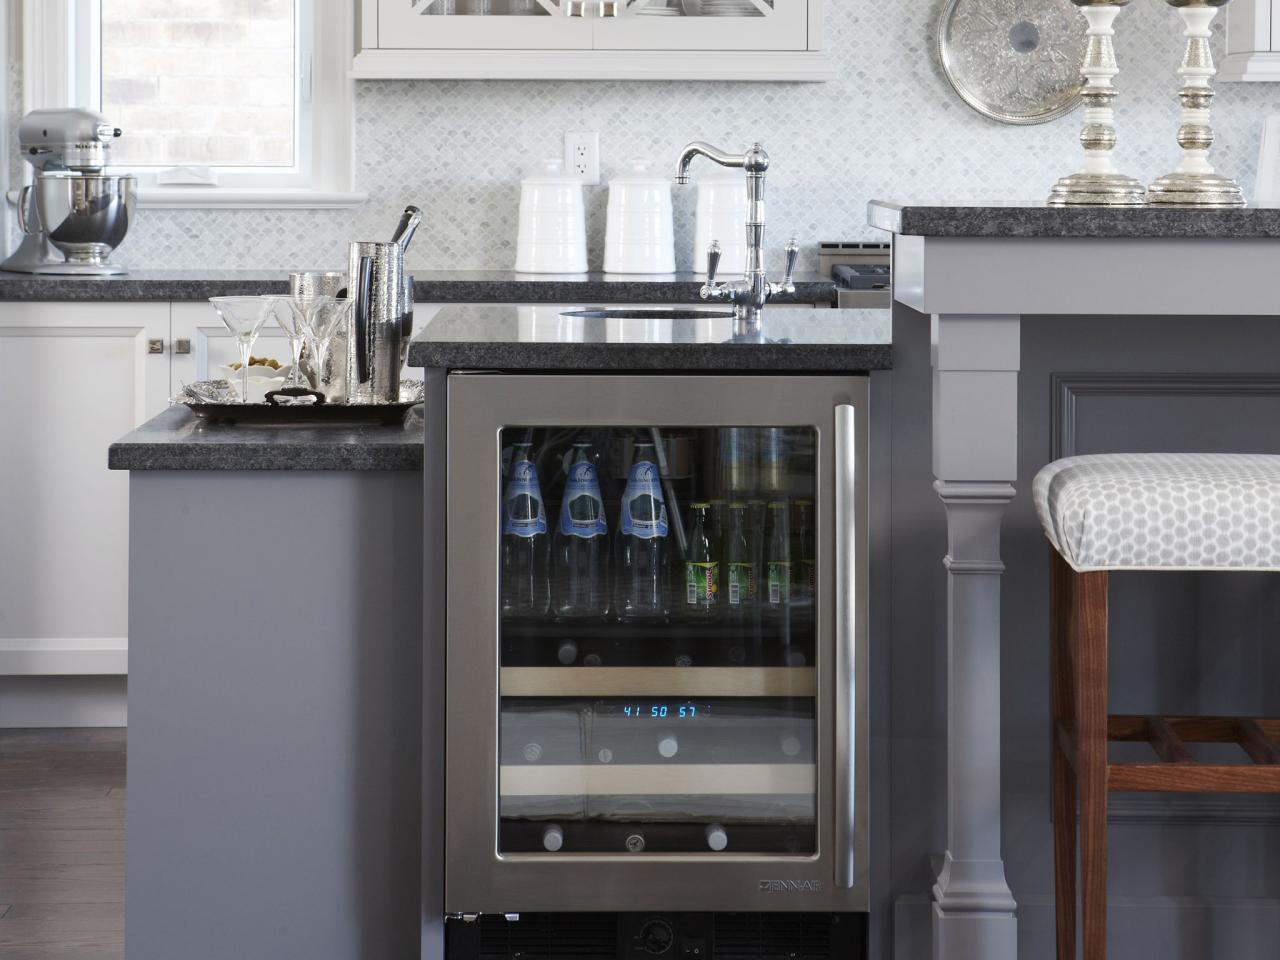 Kitchen Island Bars Pictures amp Ideas From HGTV